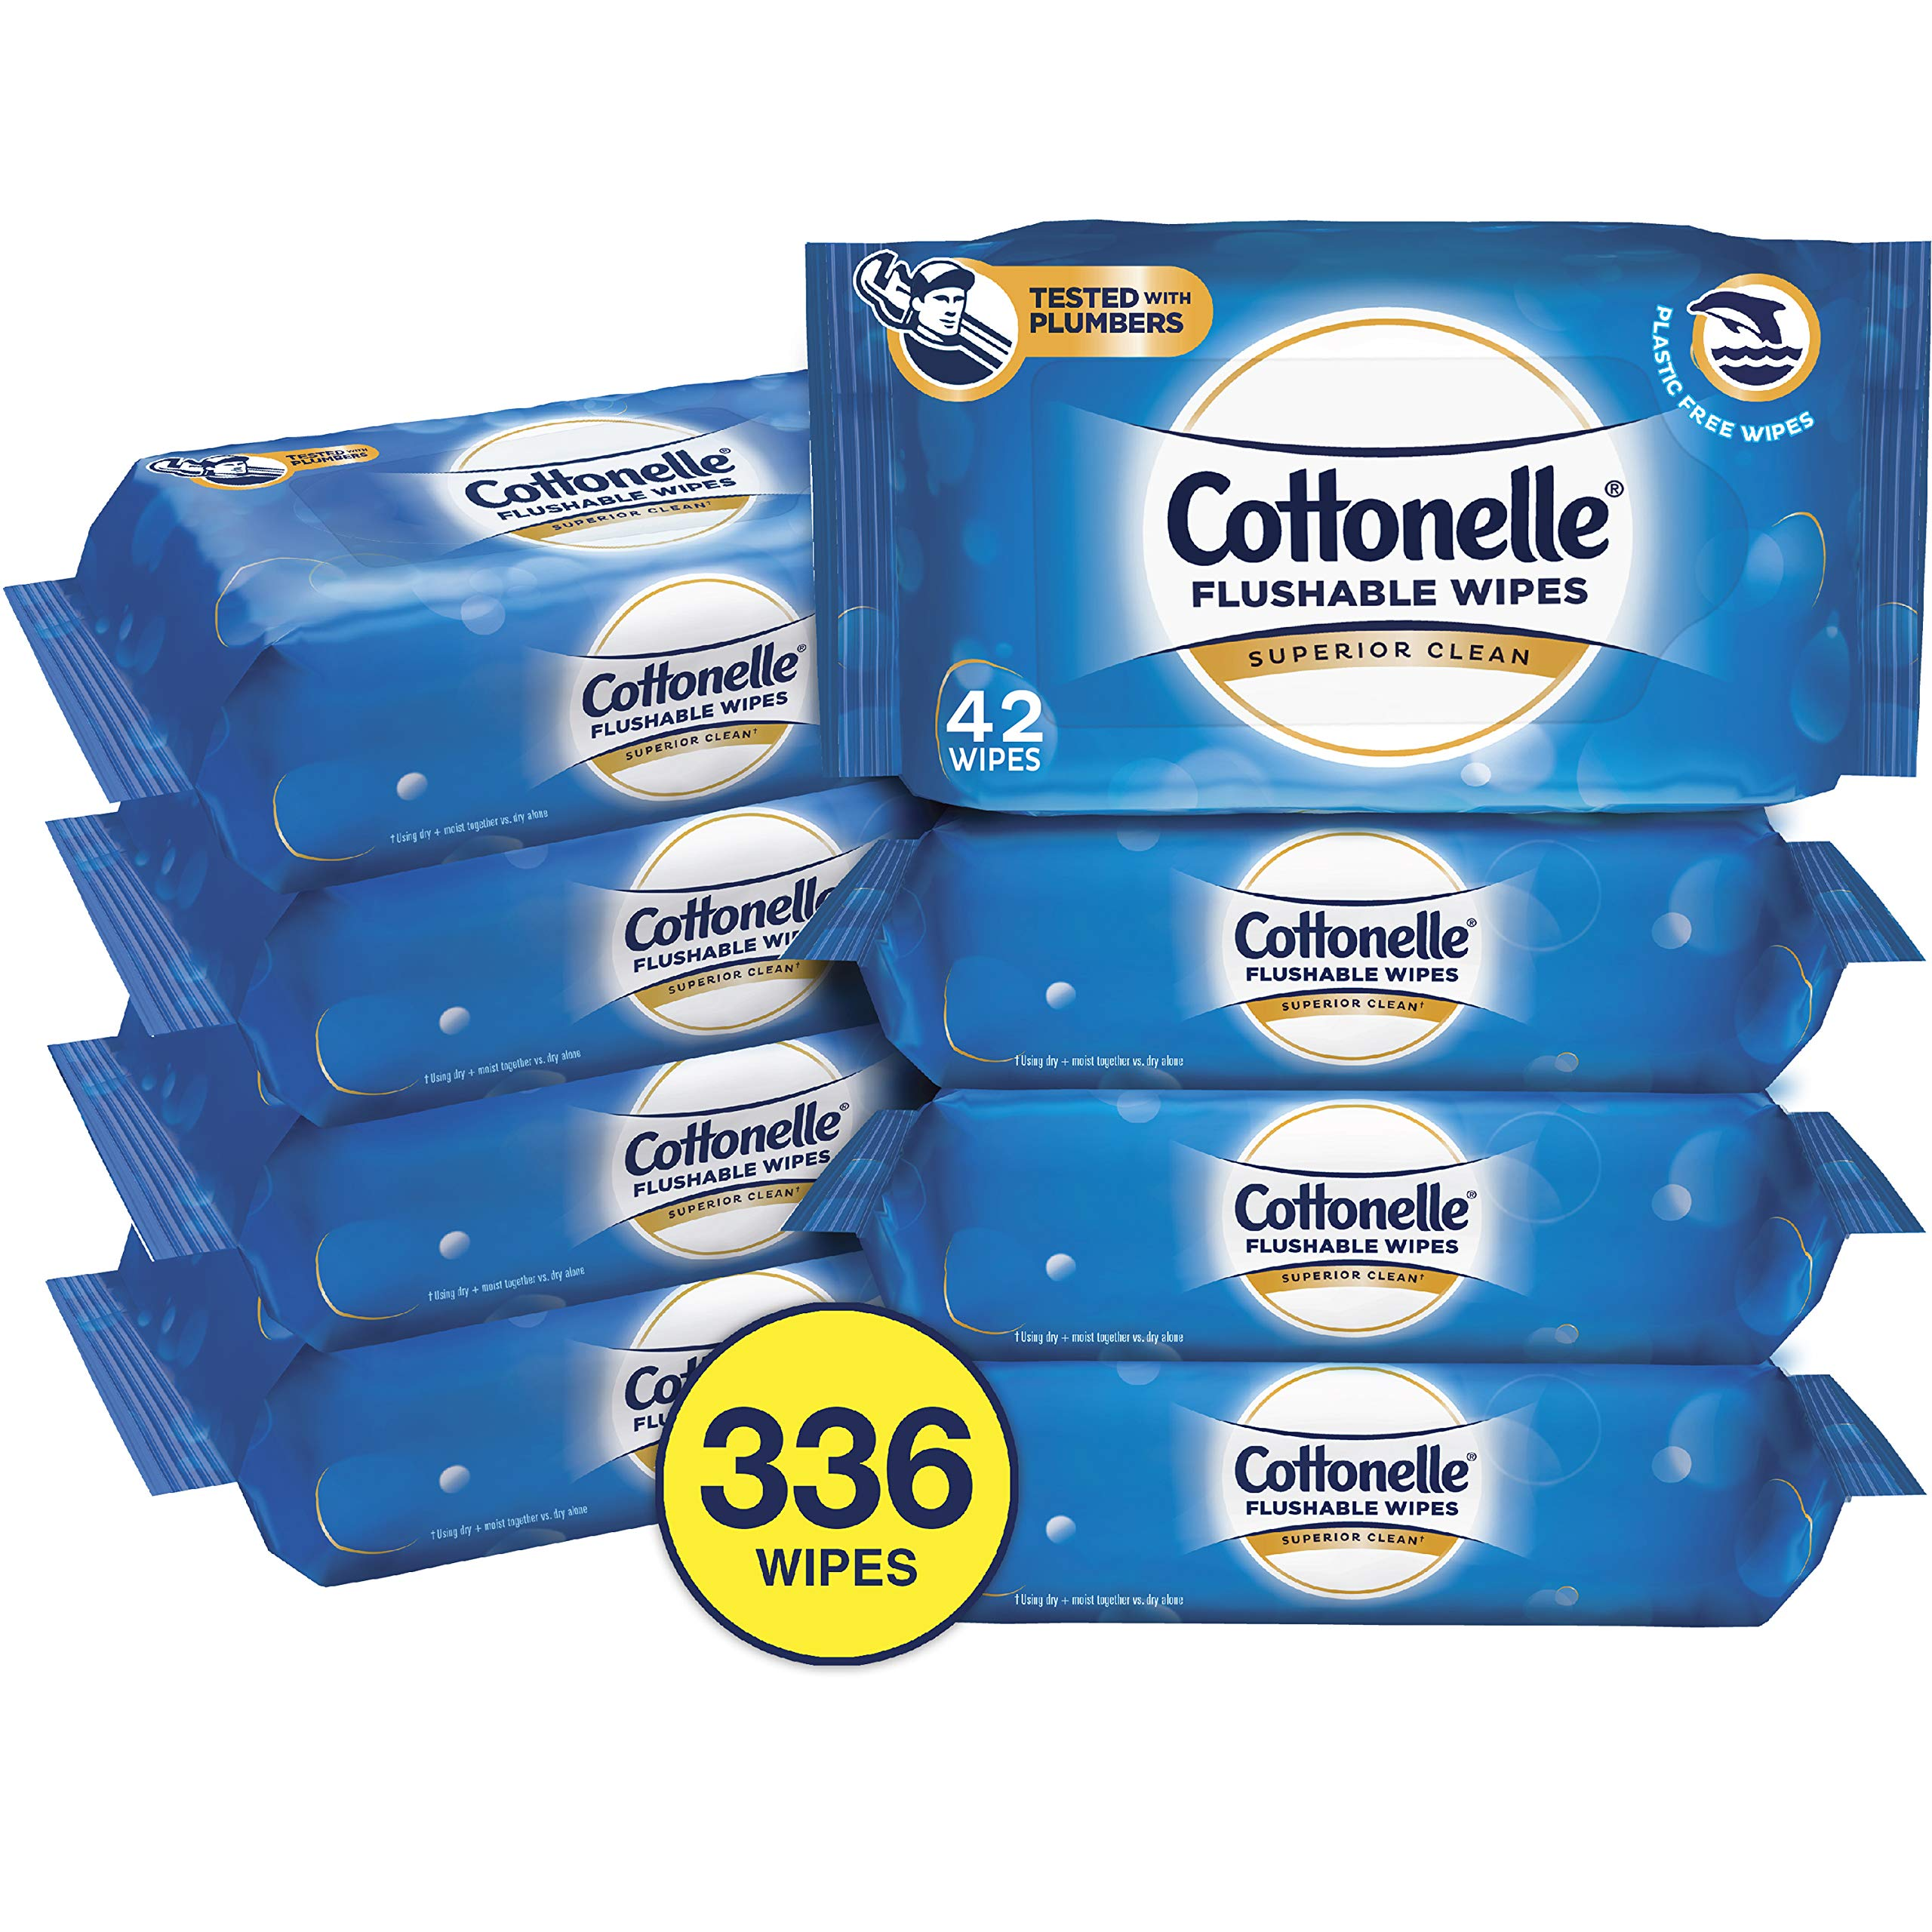 Cottonelle FreshCare Flushable Wipes for Adults, Wet Wipes, Alcohol Free, 336 Wet Wipes per Pack (Eight 42-Count Resealable Soft Packs) by Cottonelle